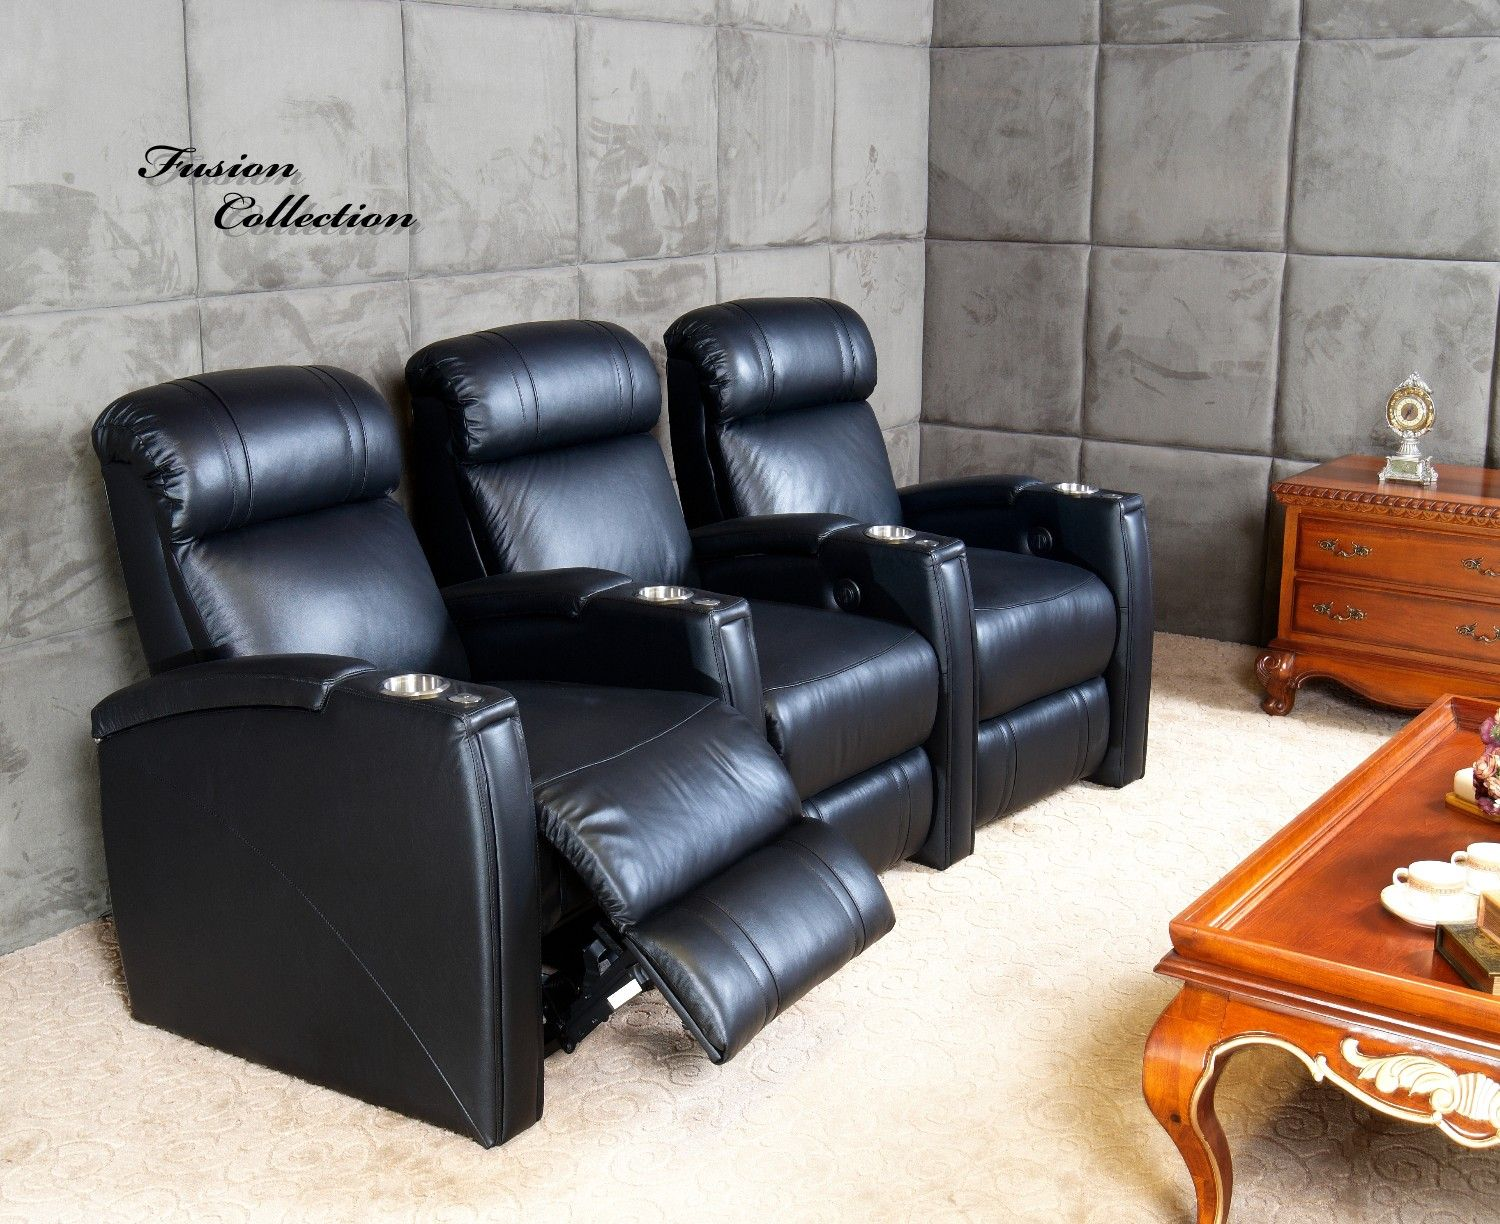 Fusion collection jive 1013 home theater seating